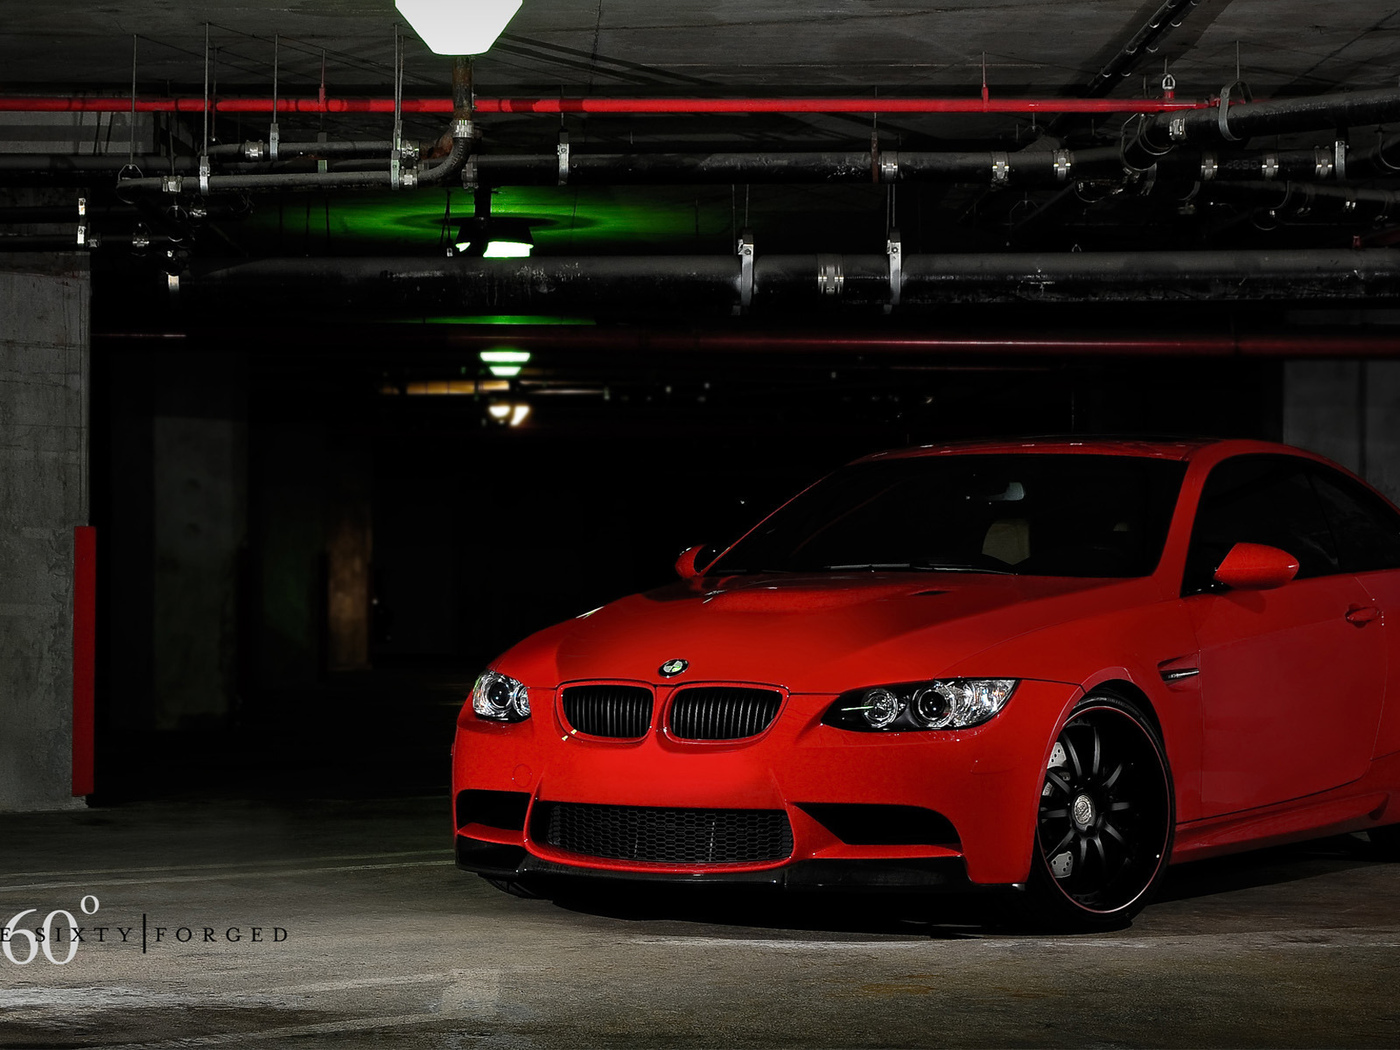 360°, bmw, forged, m3